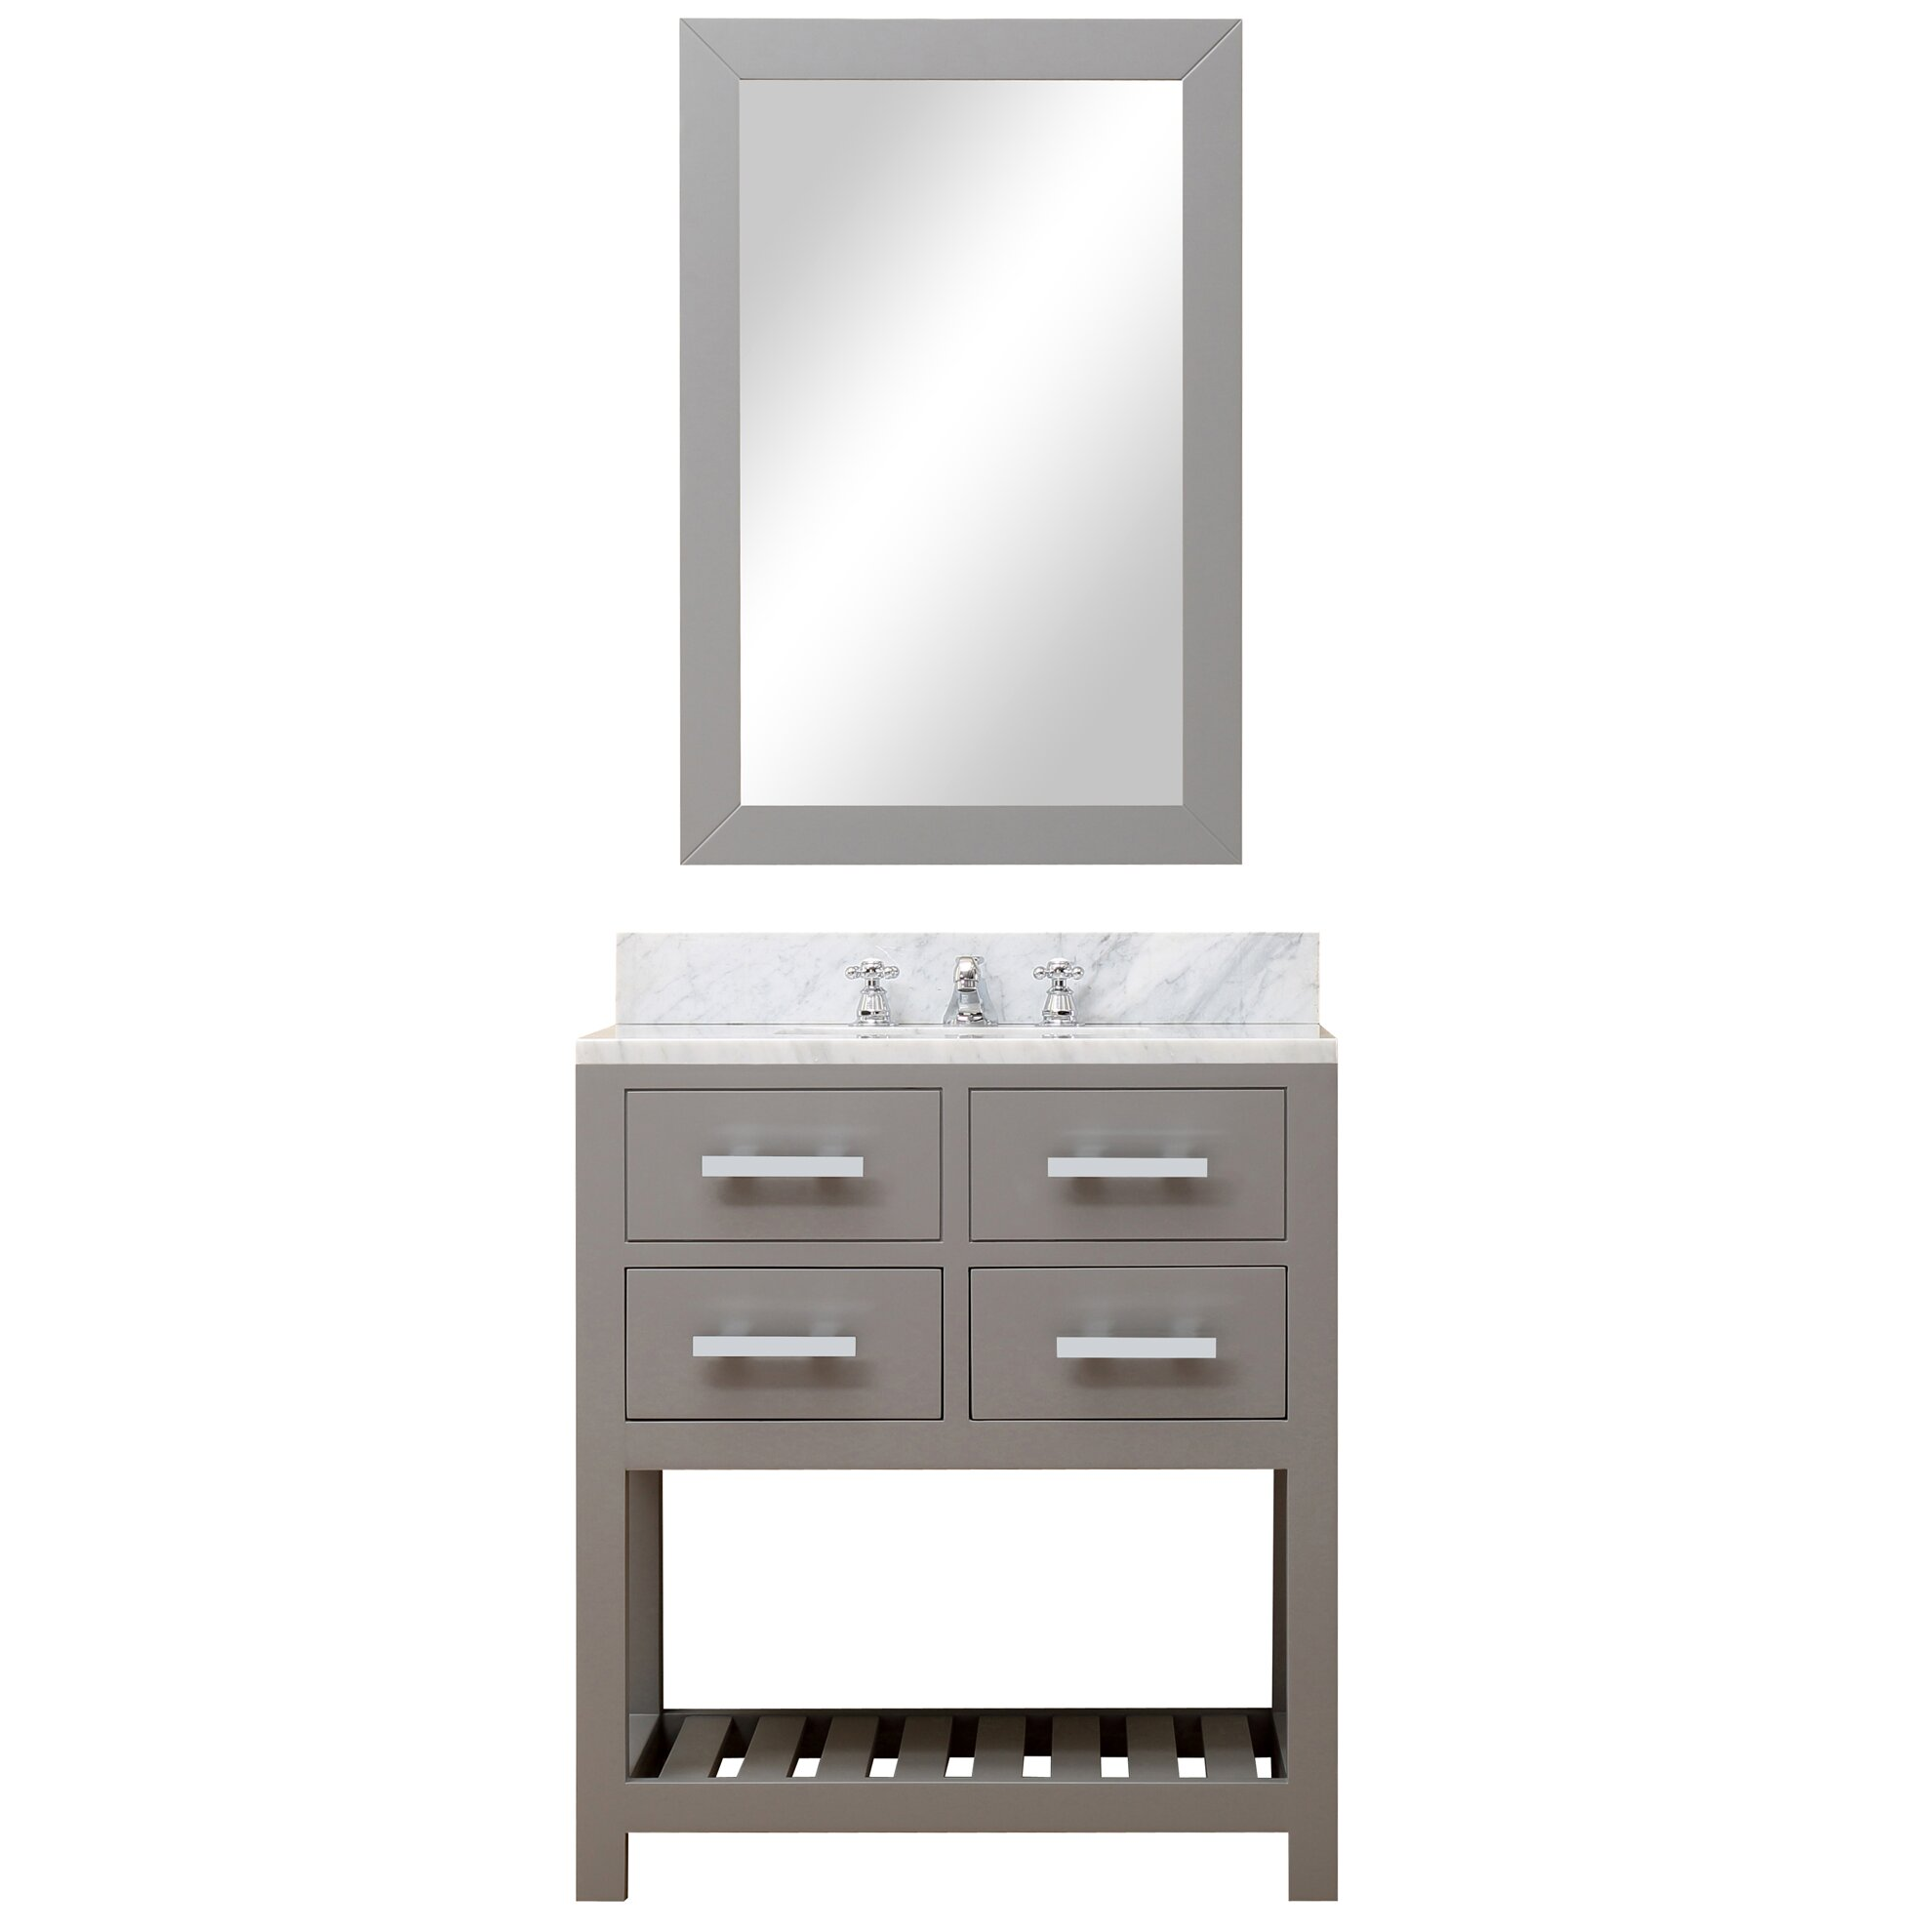 DCOR Design Creighton 30 Single Sink Bathroom Vanity Set With Mirror A